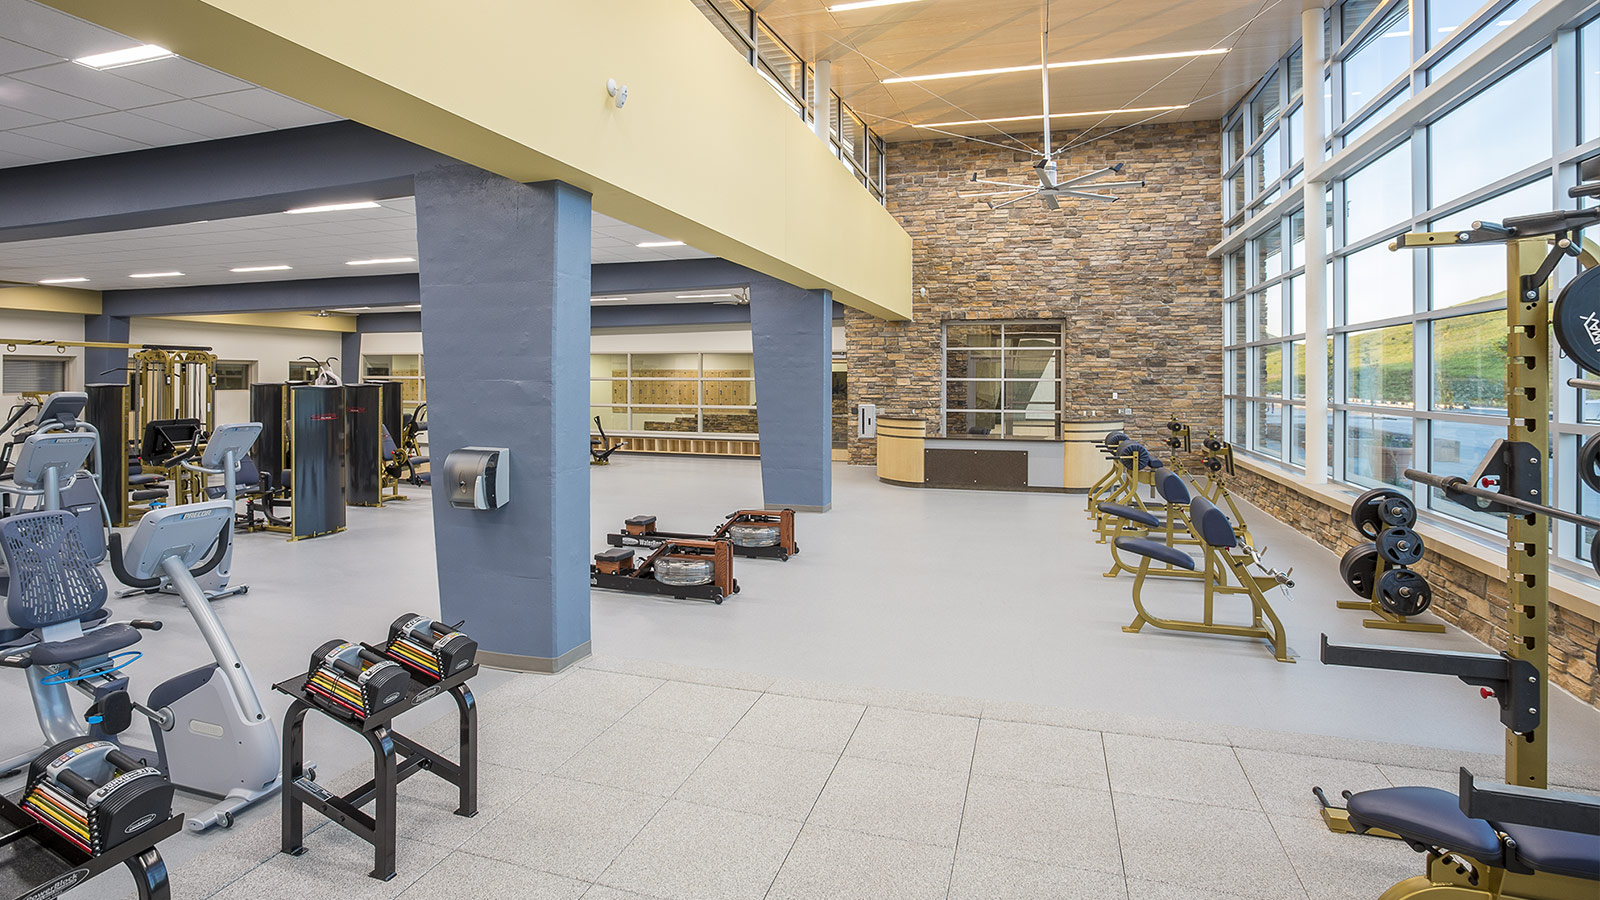 South Dakota School of Mines & Technology Student Wellness & Recreation Center